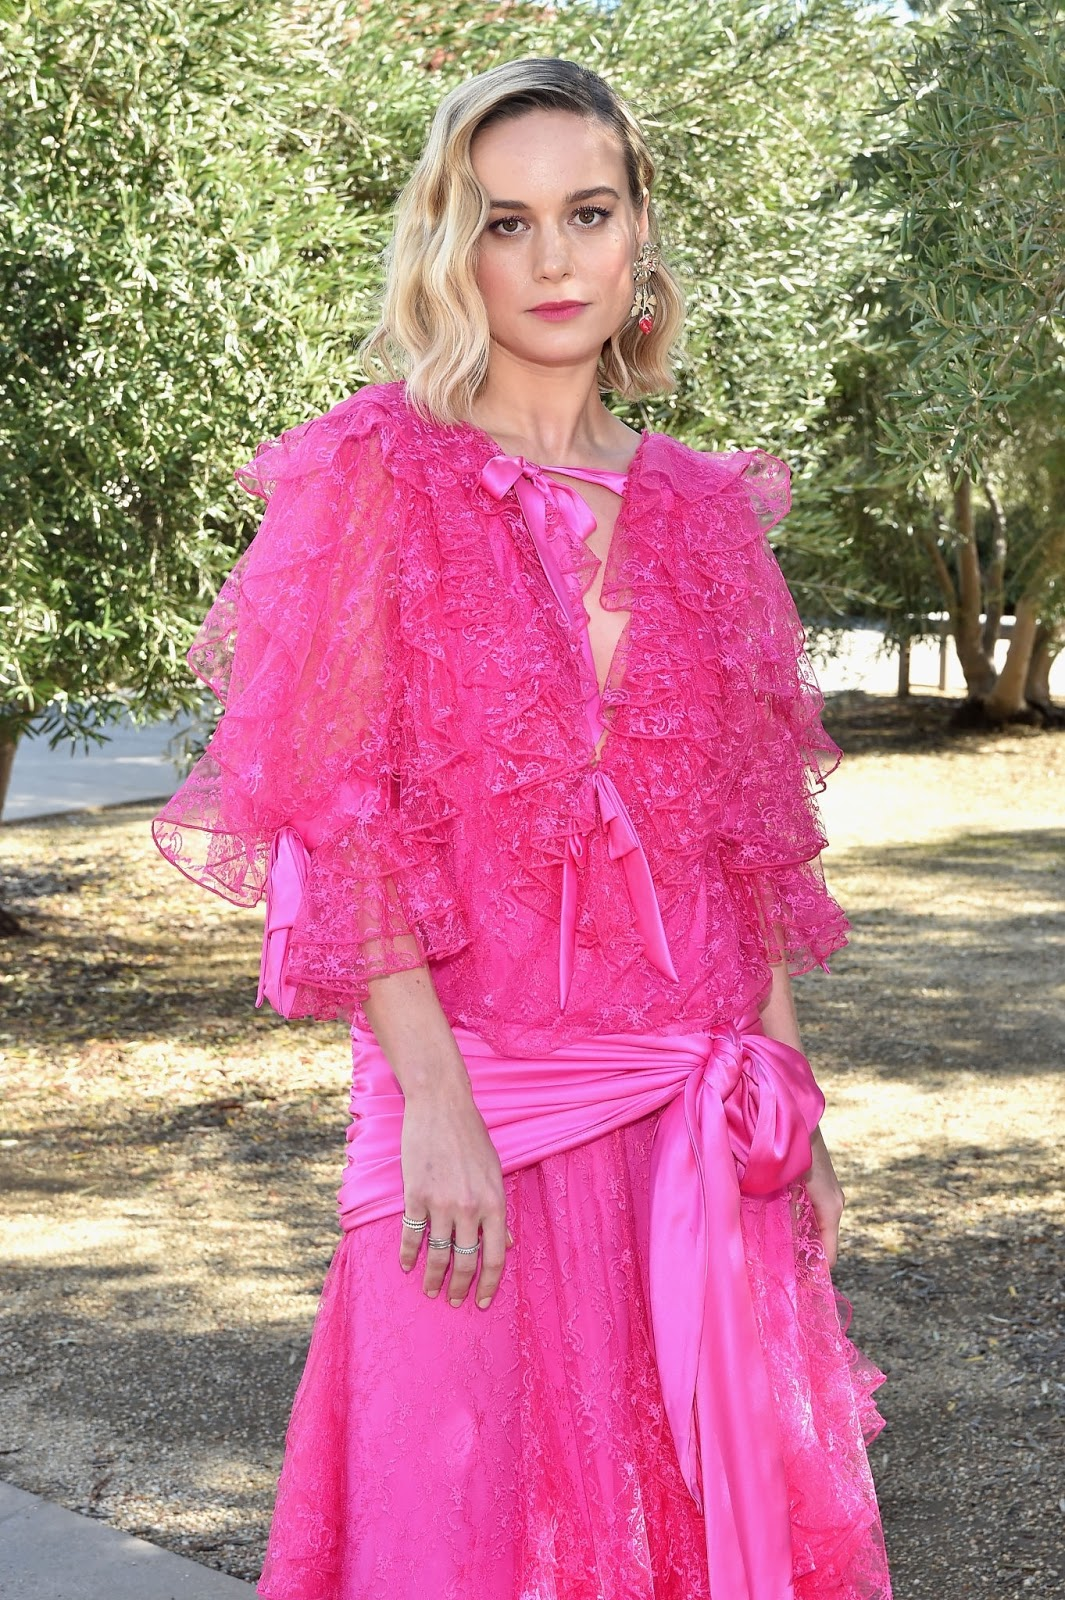 Brie Larson - Rodarte FW/19 Runway Show at the Huntington Library in San Marino - 02/05/2019